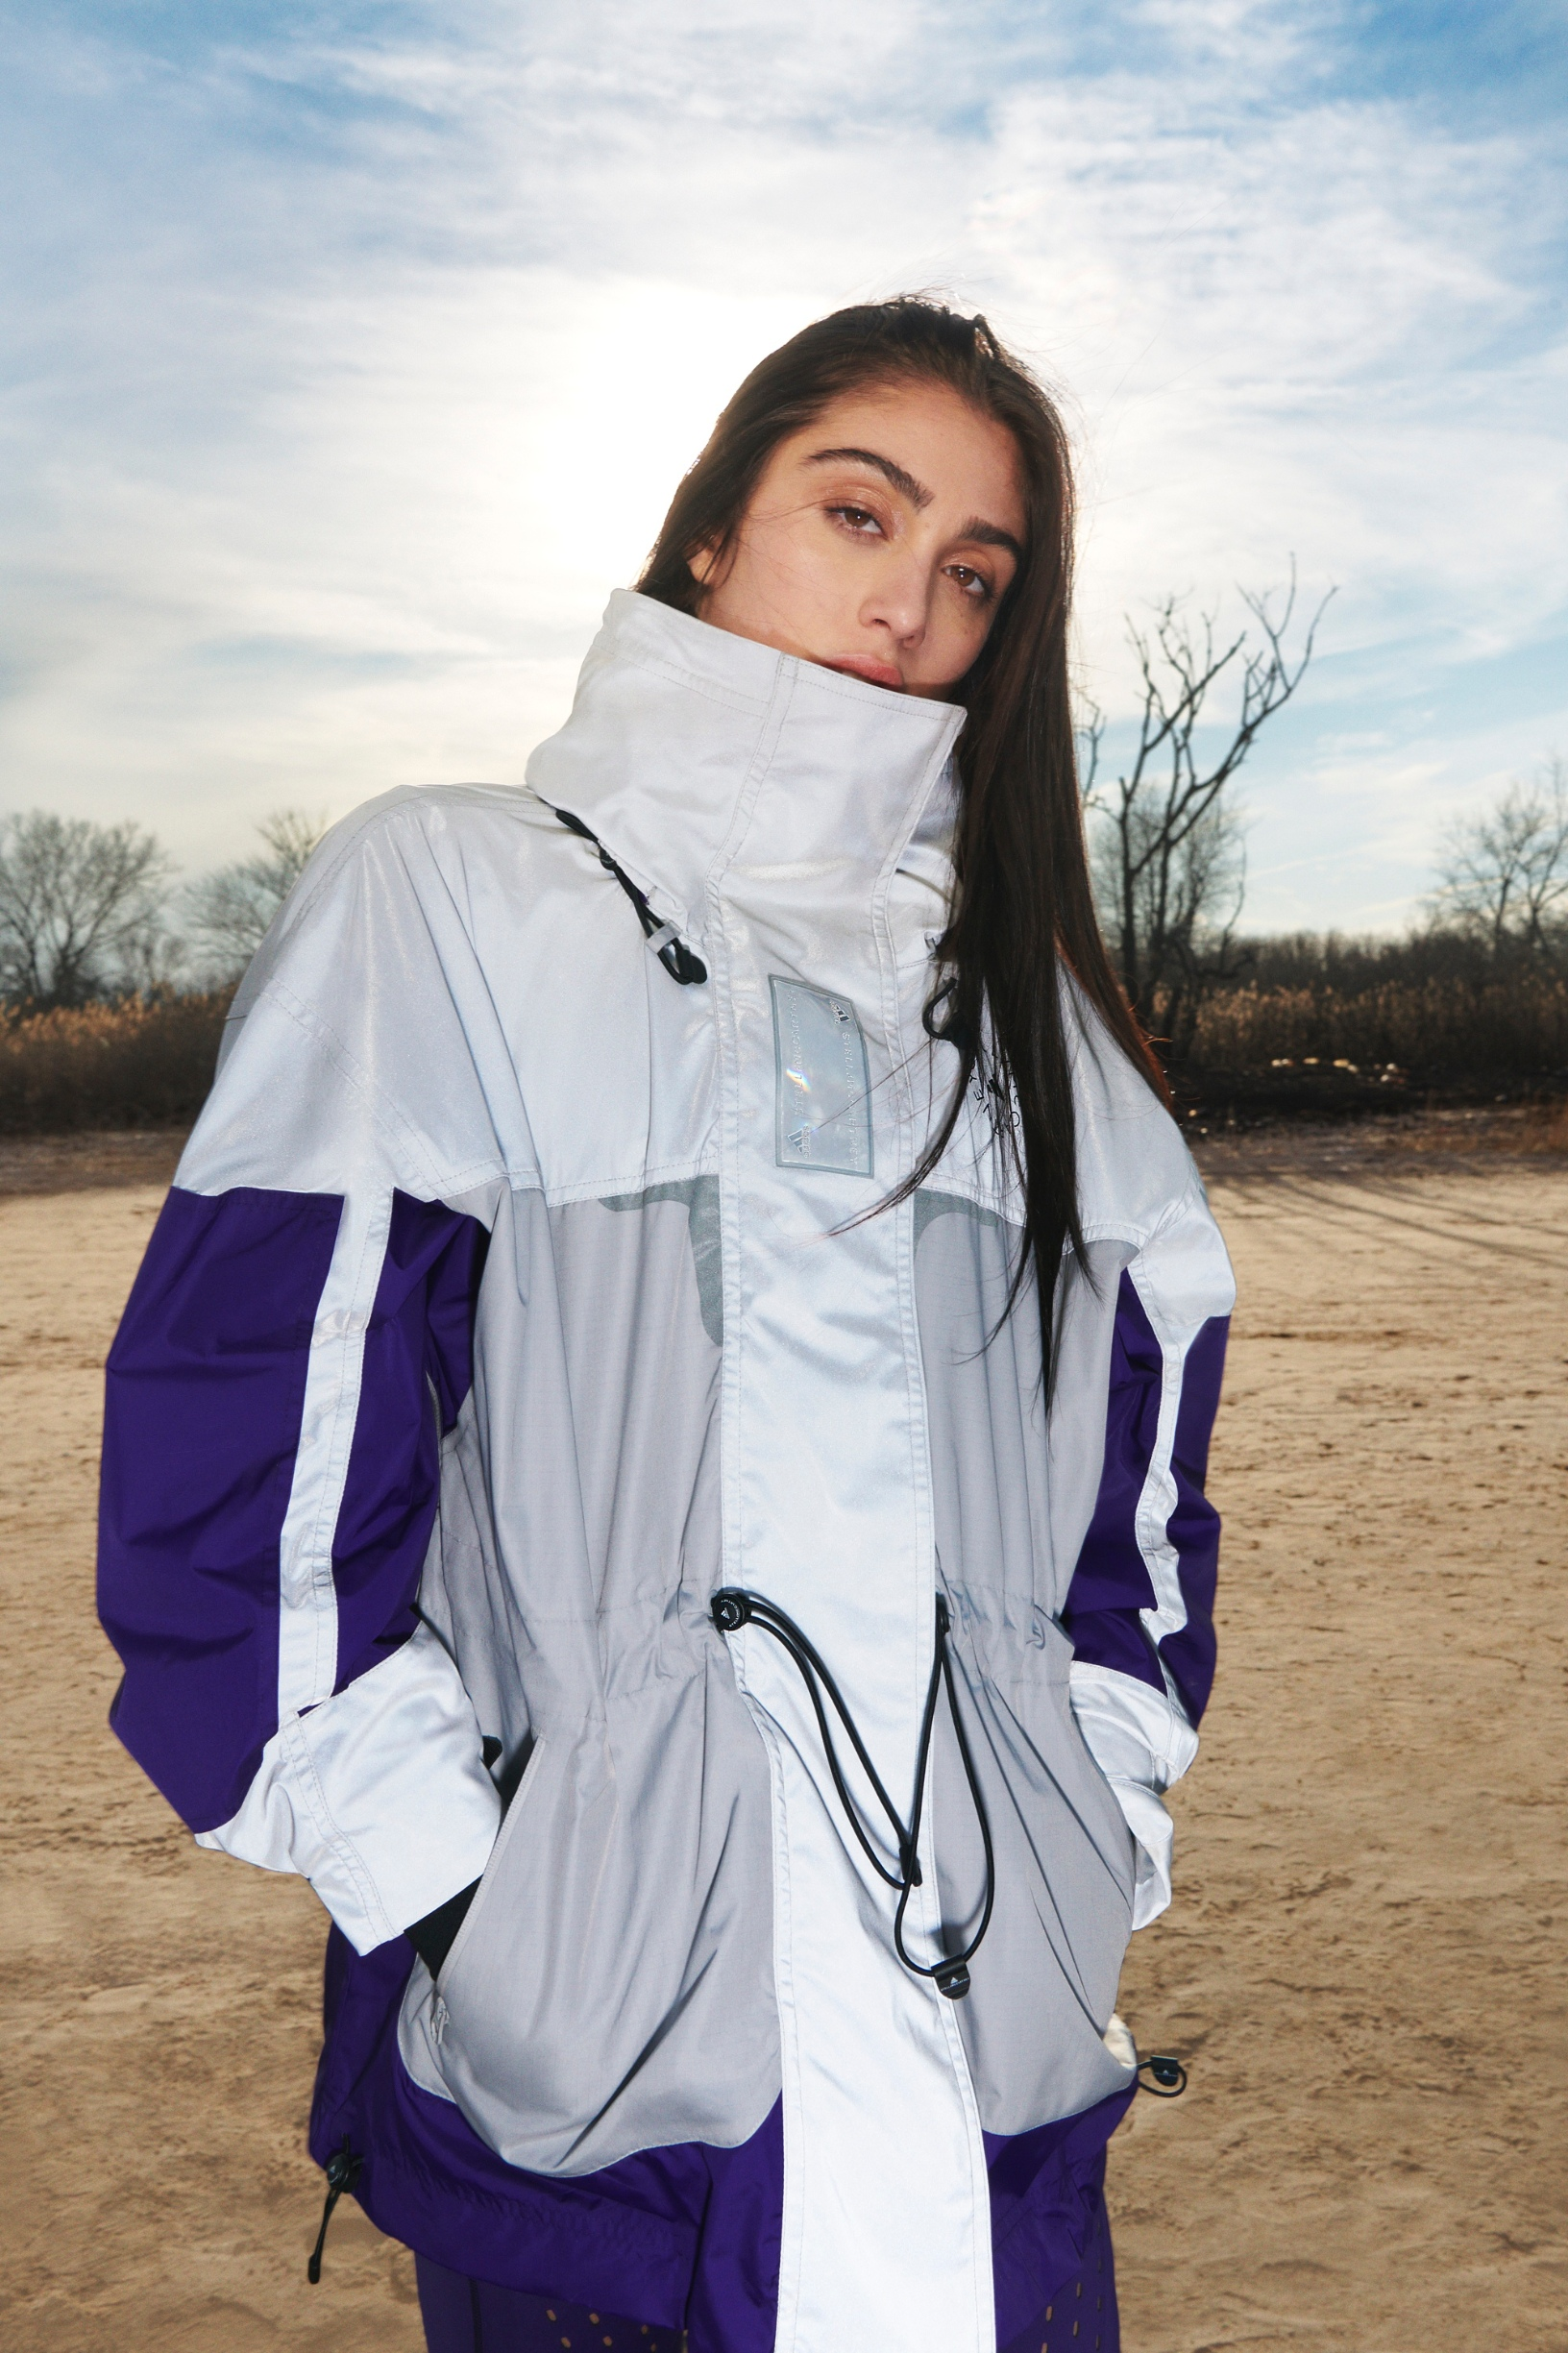 Madonna's daughter Lourdes Leon choreographs, co-directs and stars in this new adidas by Stella McCartney autumn/winter 2020 collection campaign. The collection